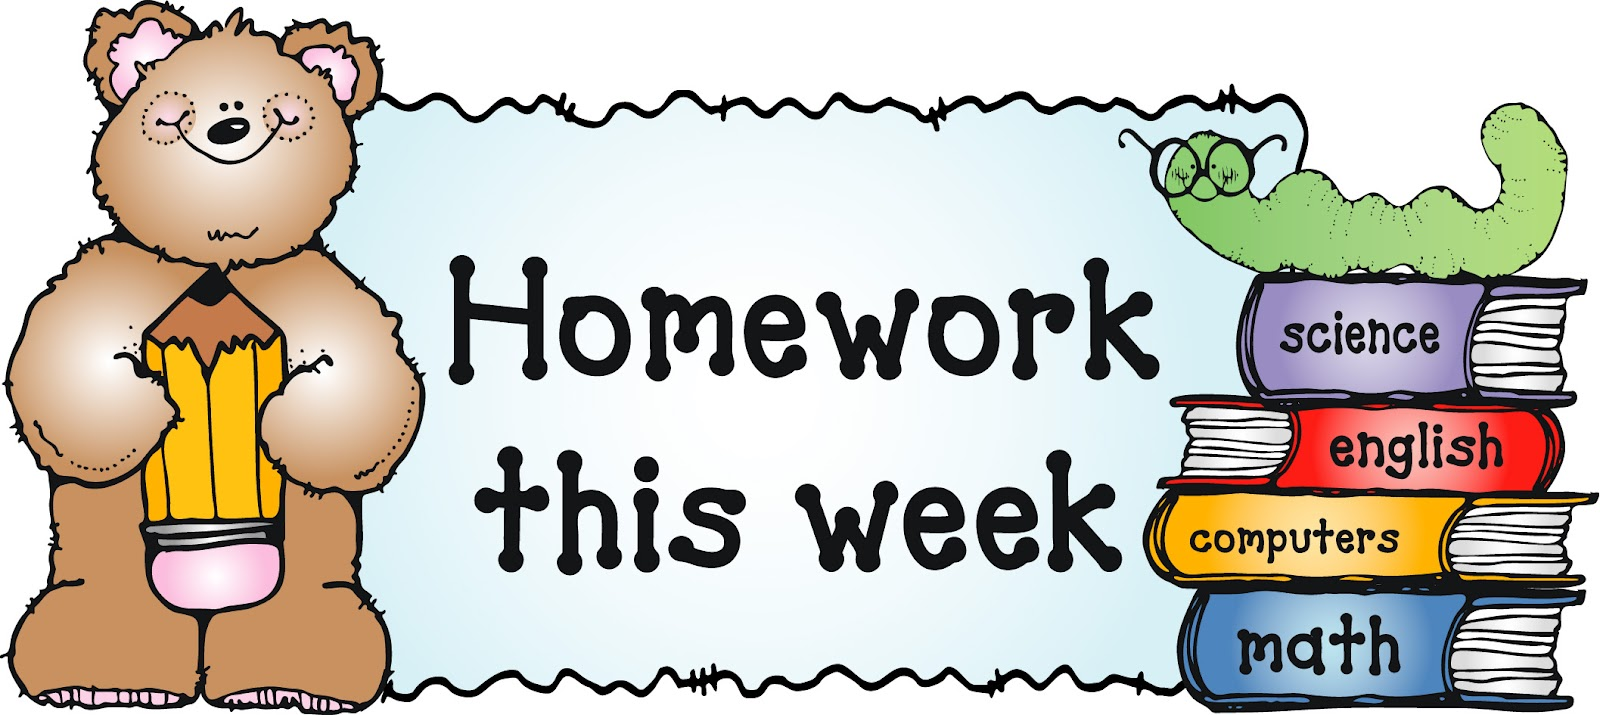 Homework Clipart Border Introducere Home-Homework clipart border Introducere Homework Clip Art For Kids Clipart Library-11